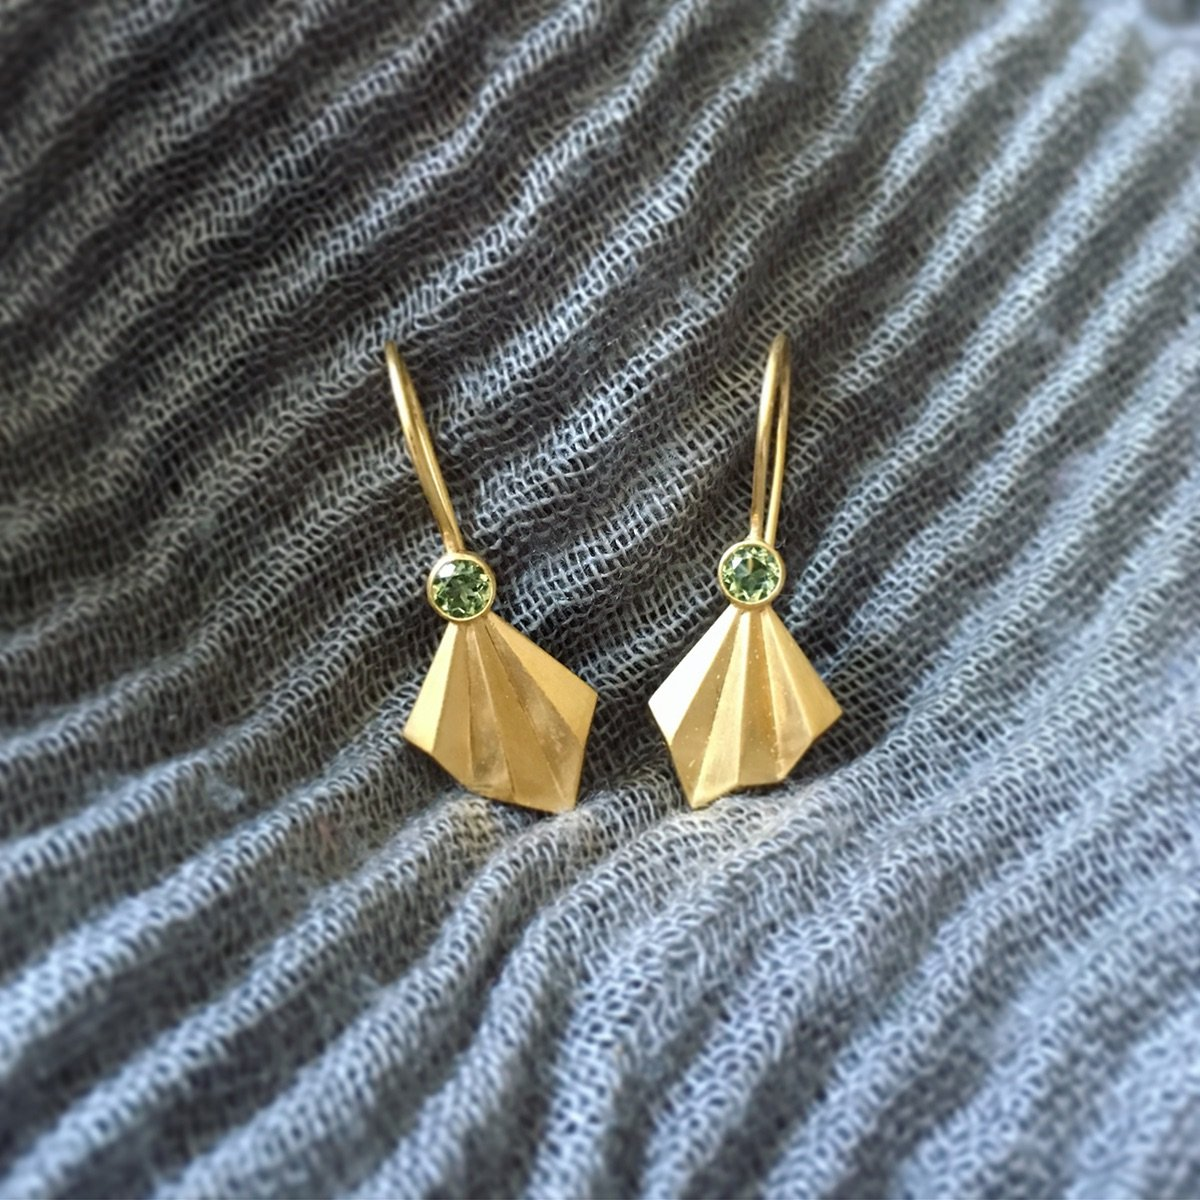 Pleated Flare Earrings, gold vermeil with ethically sourced peridots by Alice Barnes